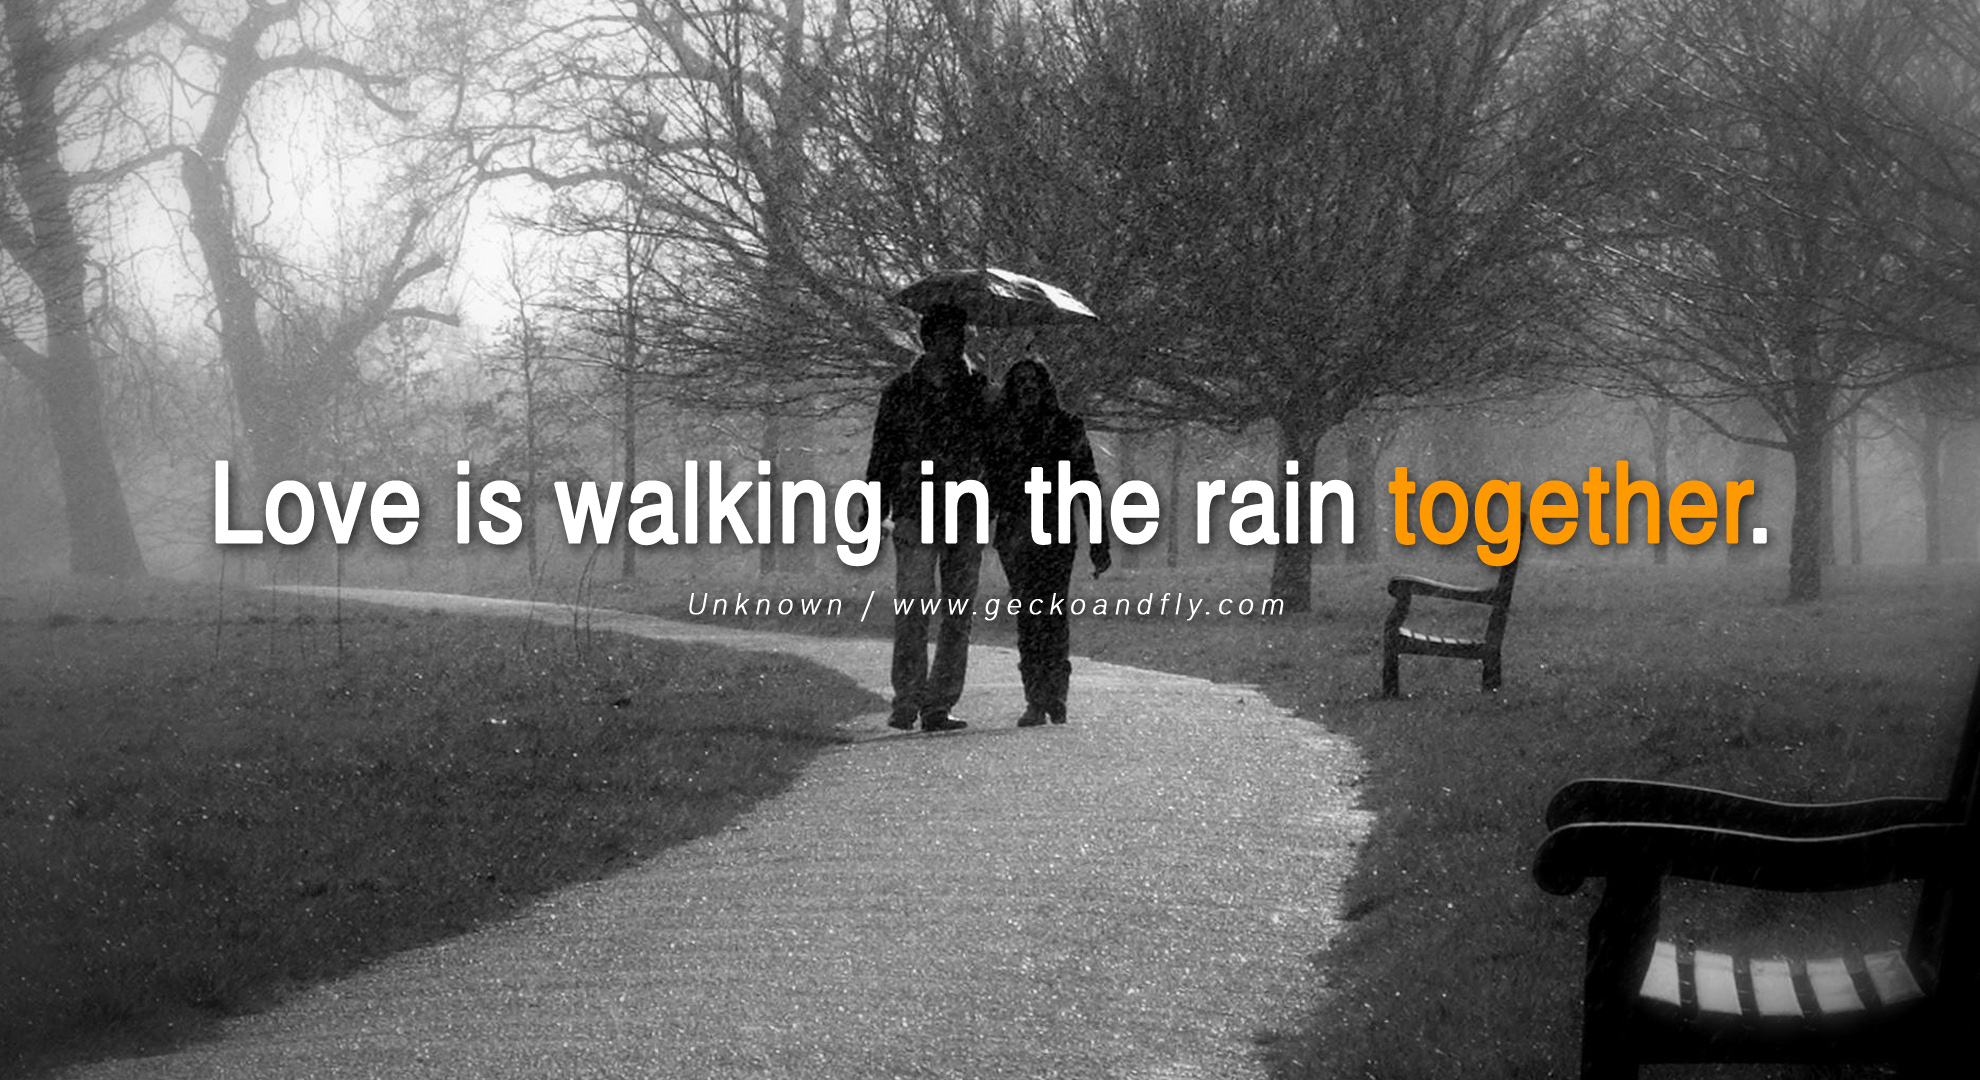 Rainy wallpapers with love quotes